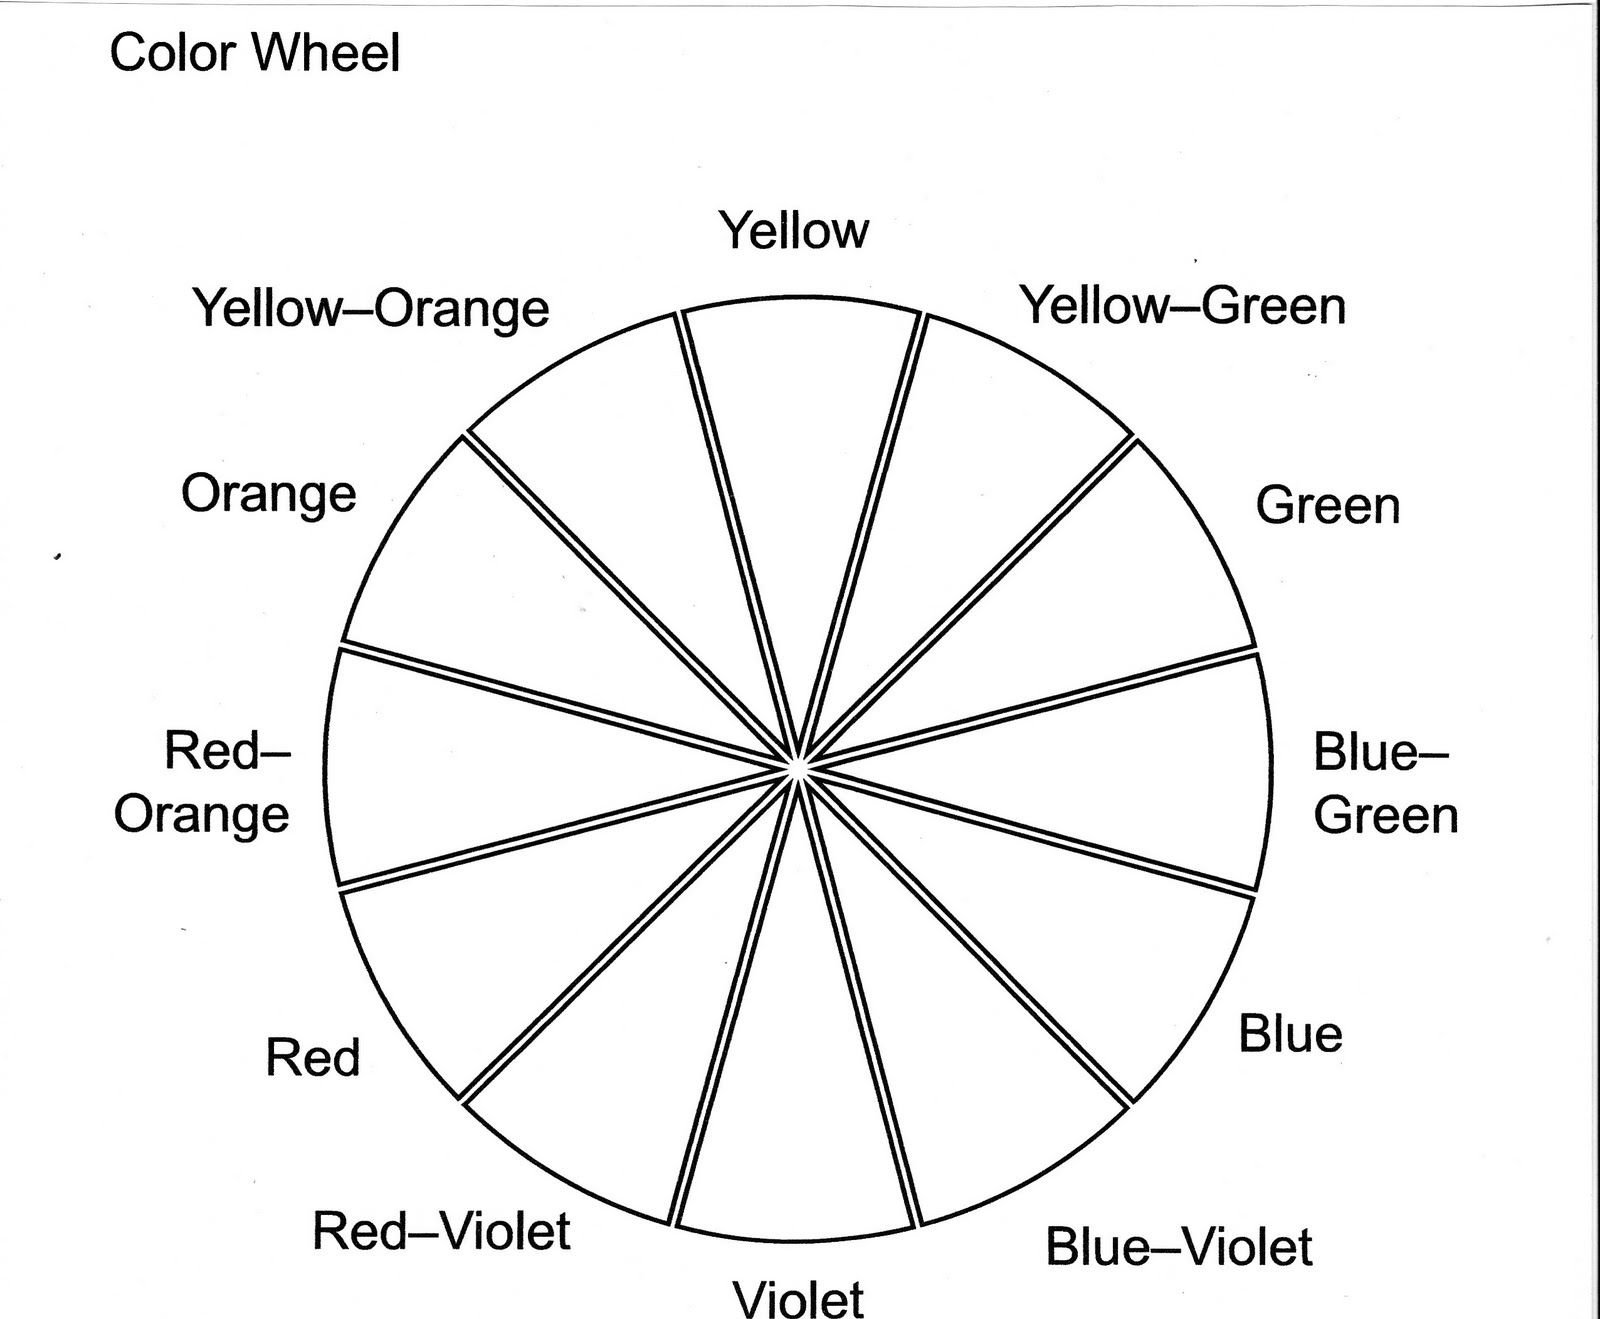 Color Wheel Worksheet Printable Color Wheel Worksheet Complementary Color Wheel Color Wheel